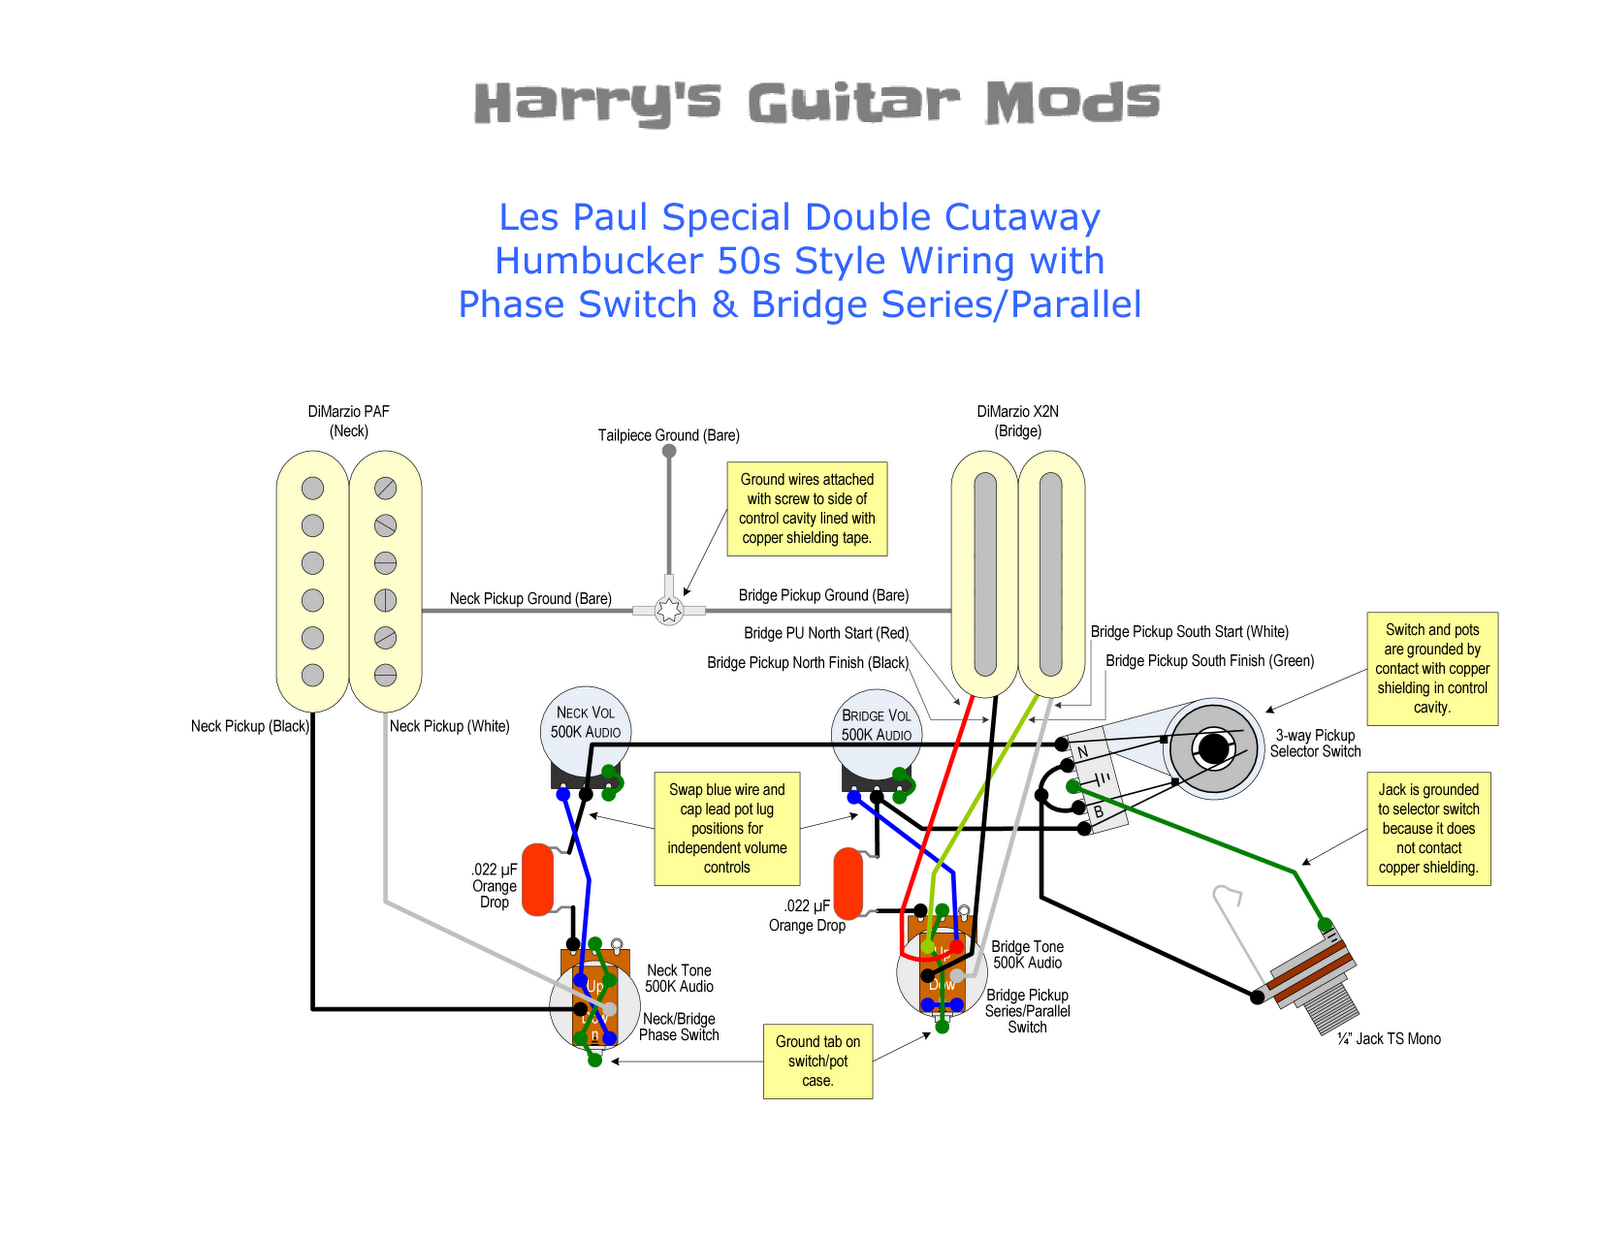 LPS+Wiring+Diagram harry's guitar mods controls wiring upgrade  at gsmportal.co